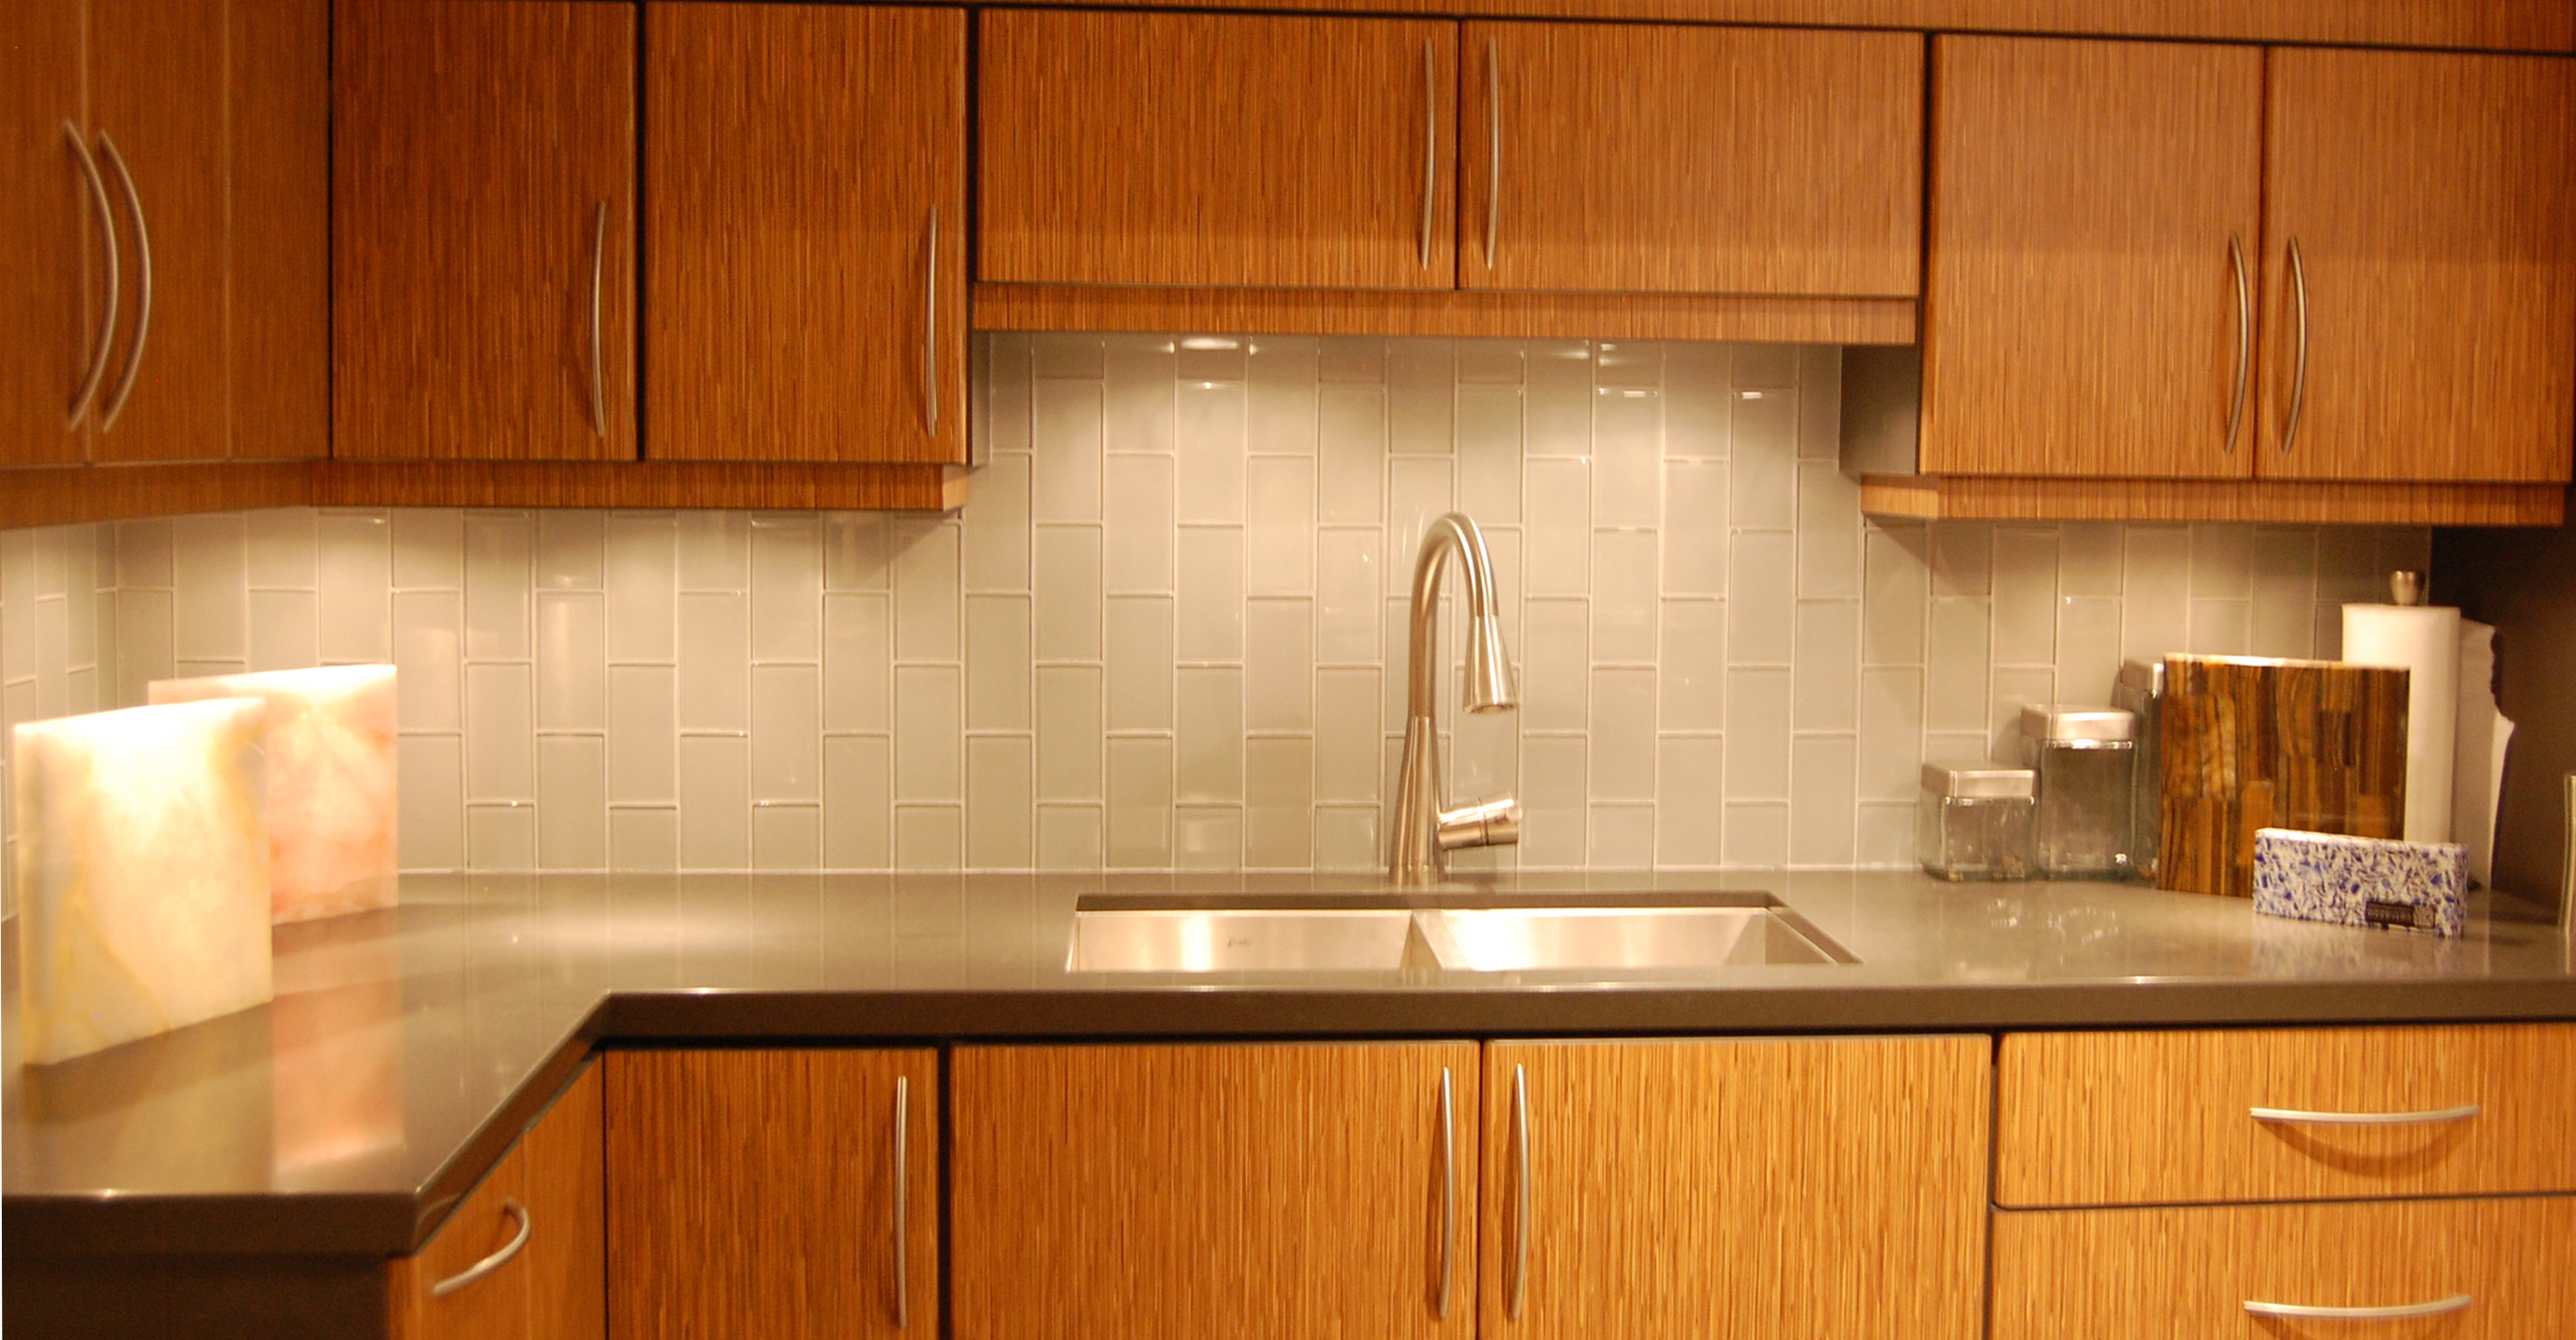 Kitchen Remodelling Portfolio, Kitchen Renovation, Backsplash Tiles